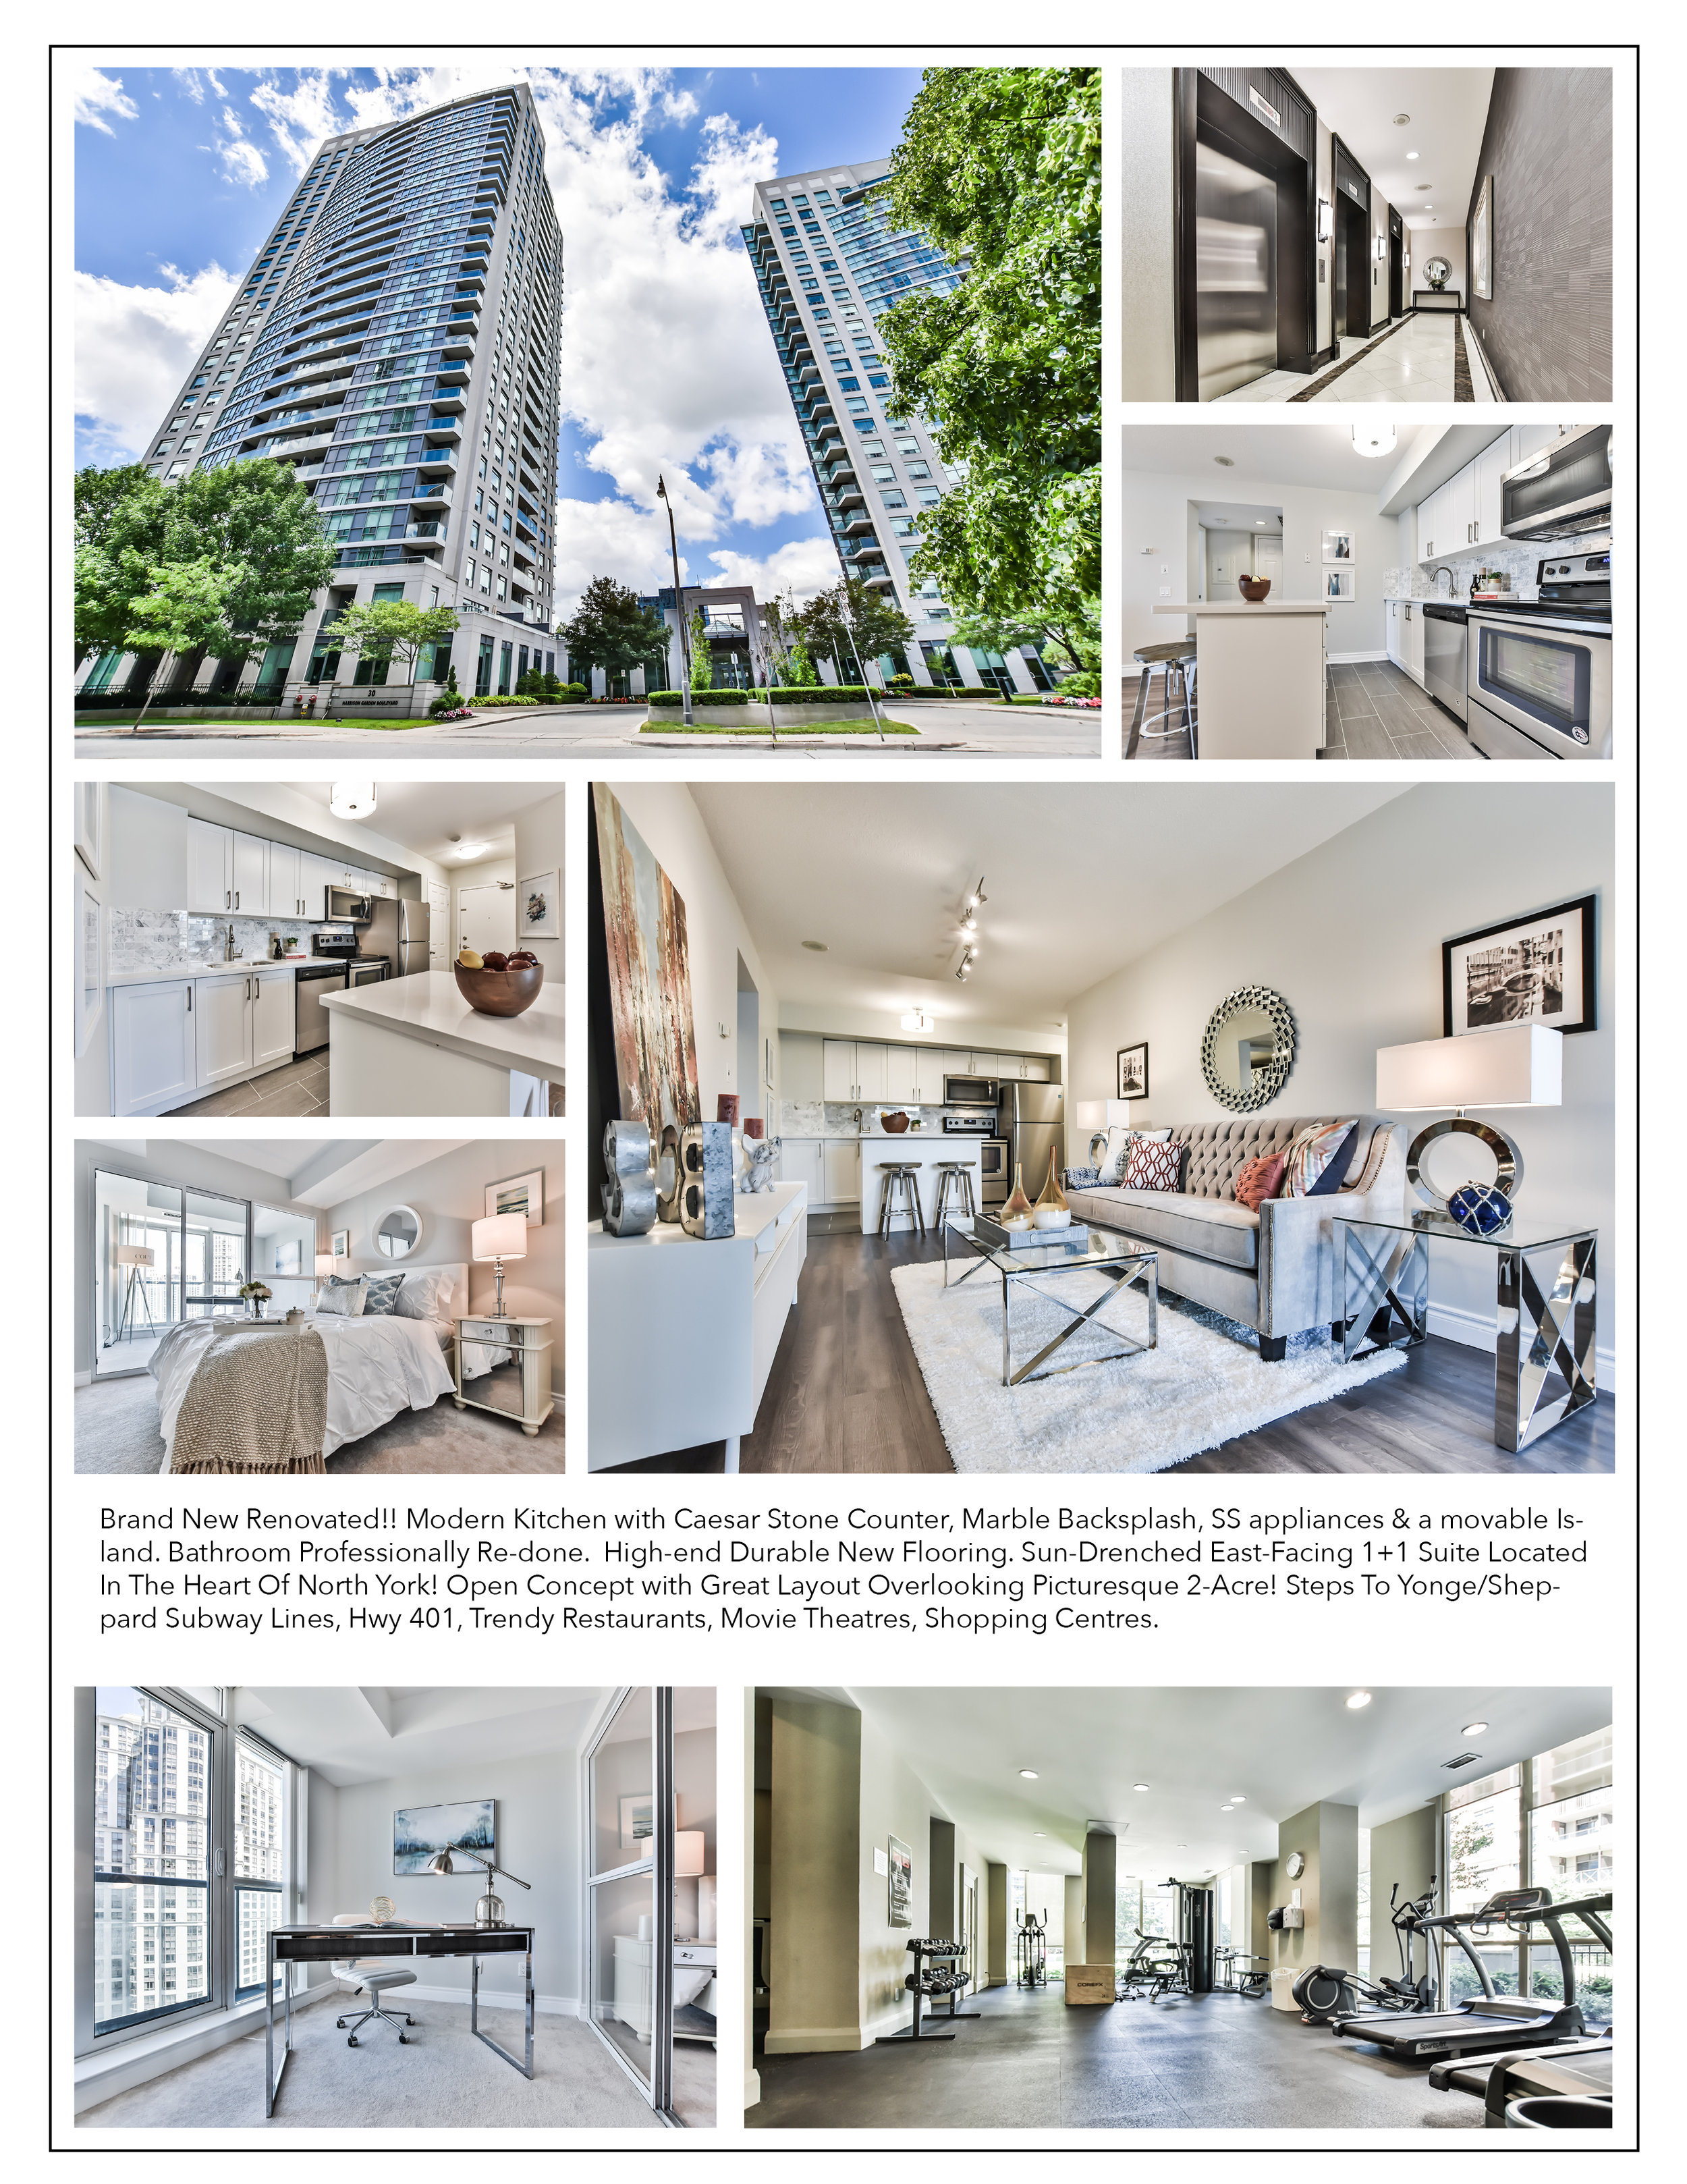 A LA CARTE - 25 copies 4 pages CARD STOCK feature sheets $80Neighbourhood Photos & Video $80Aerial Drone Photos & Video $250Twilight Property Shooting $1003D Matterport + Floor Plan